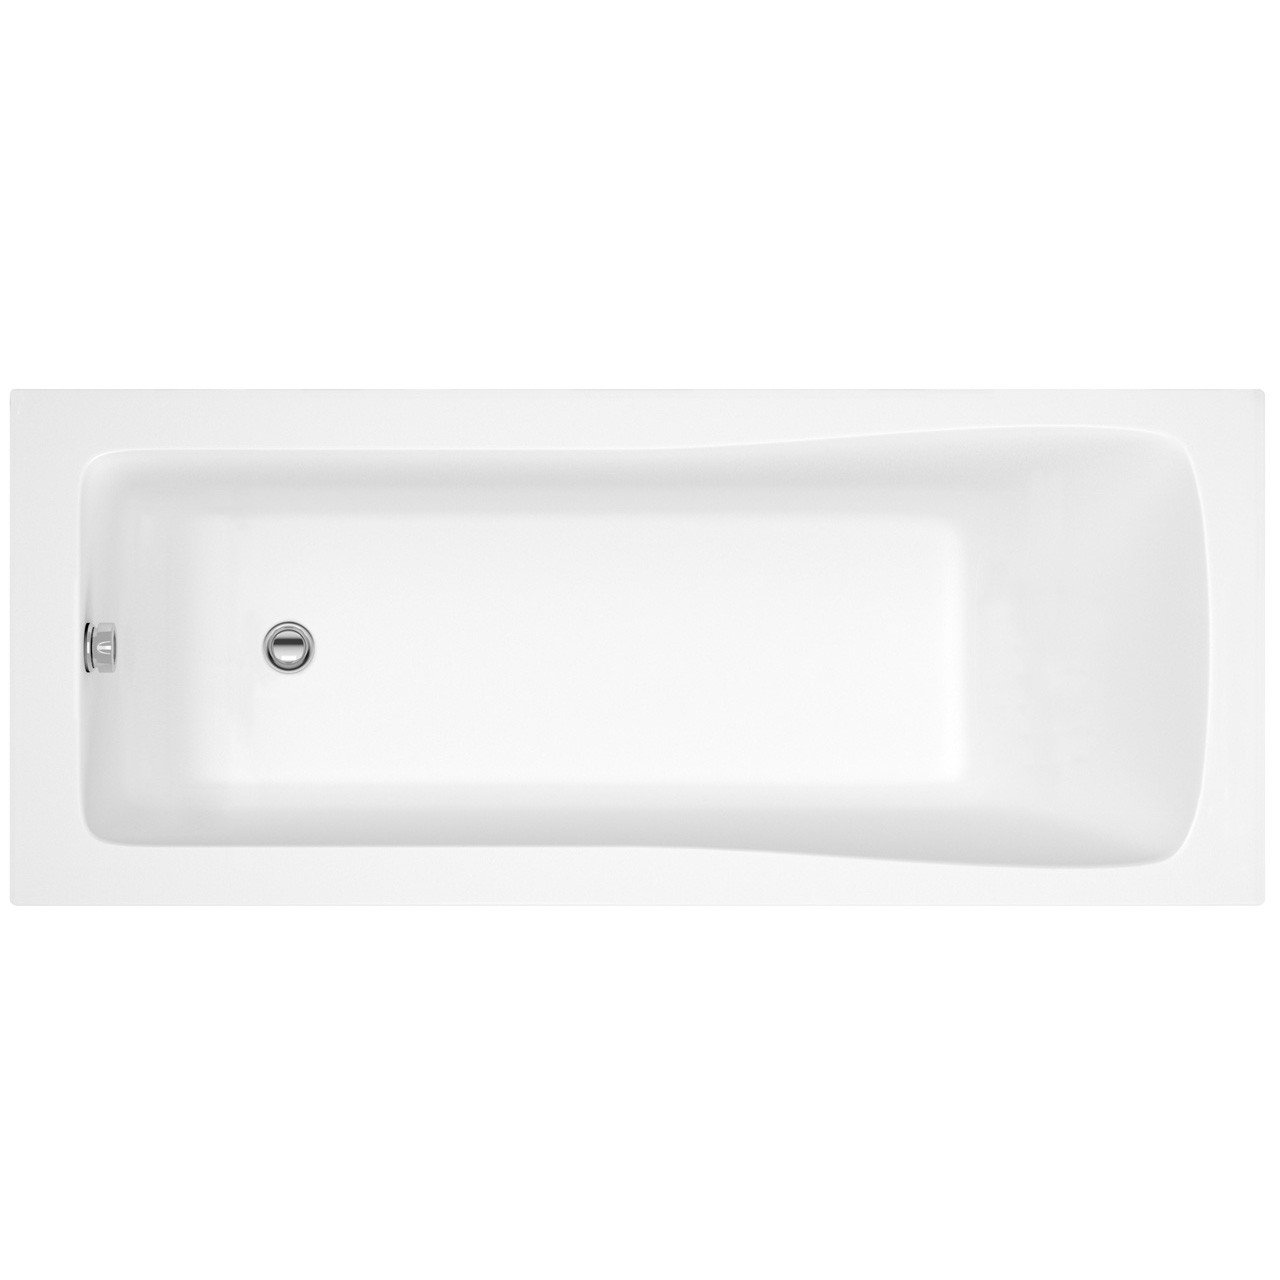 Premier Square Single Ended Bath 1600mm x 700mm - NBA407